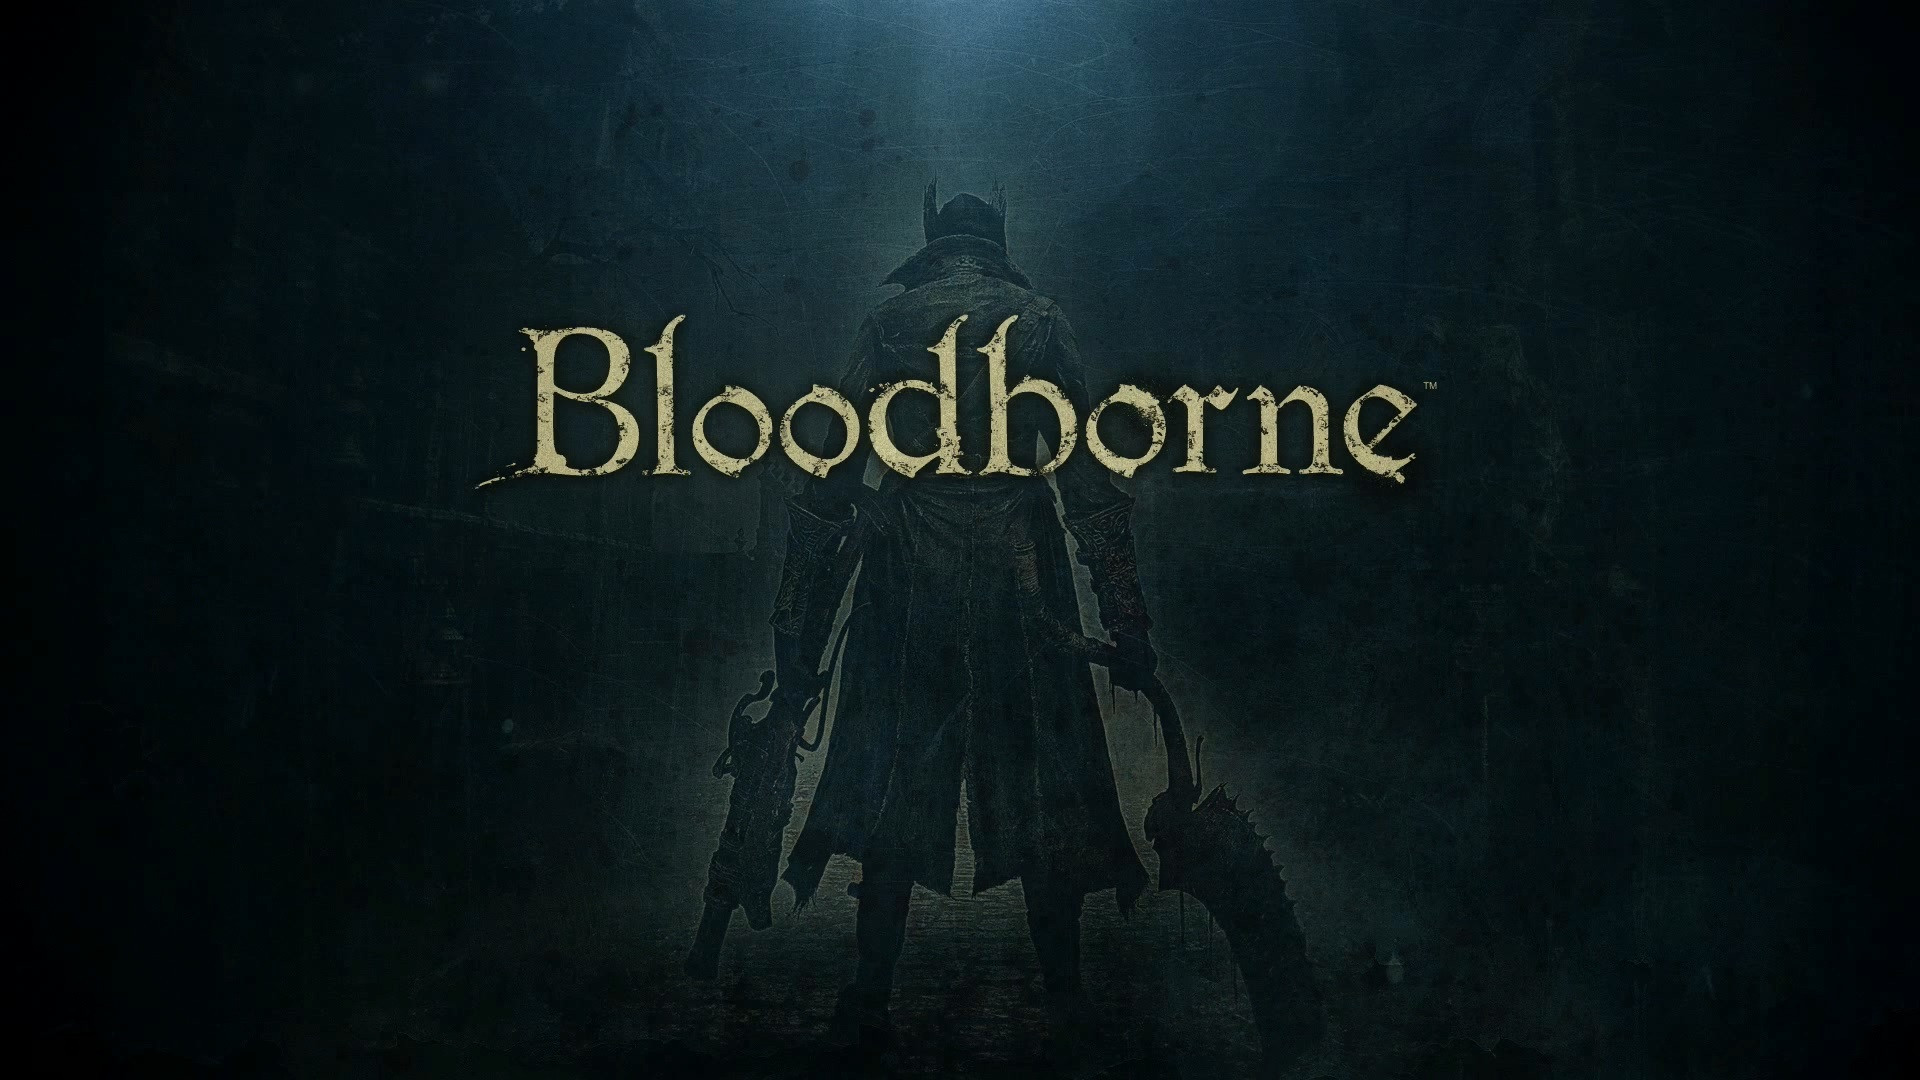 Bloodborne wallpapers high quality download free - Bloodborne download ...